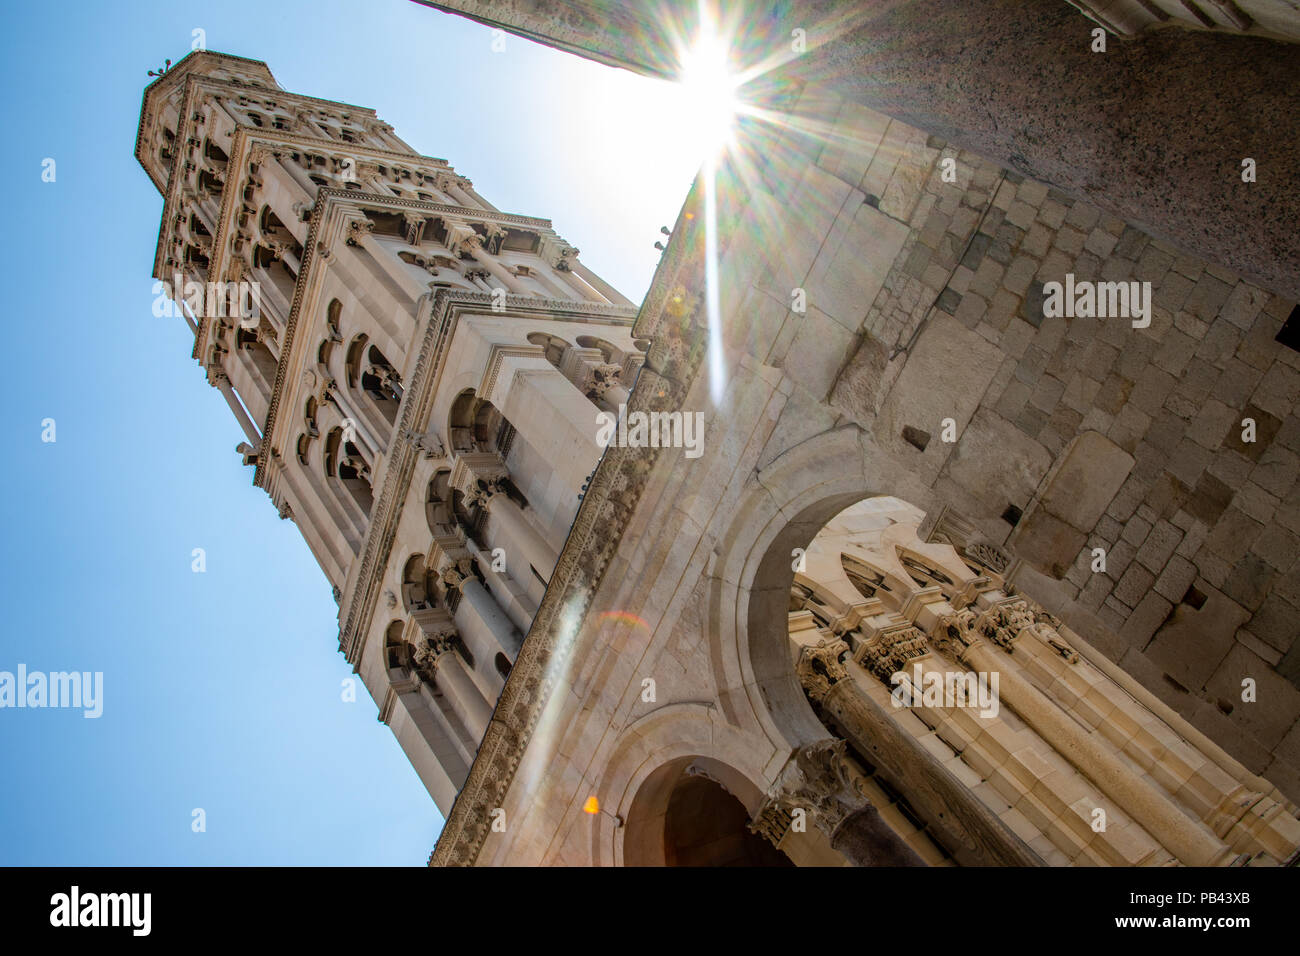 Cathédrale de saint Domnius et clocher, ancien Split, le centre historique de Split, Croatie Photo Stock